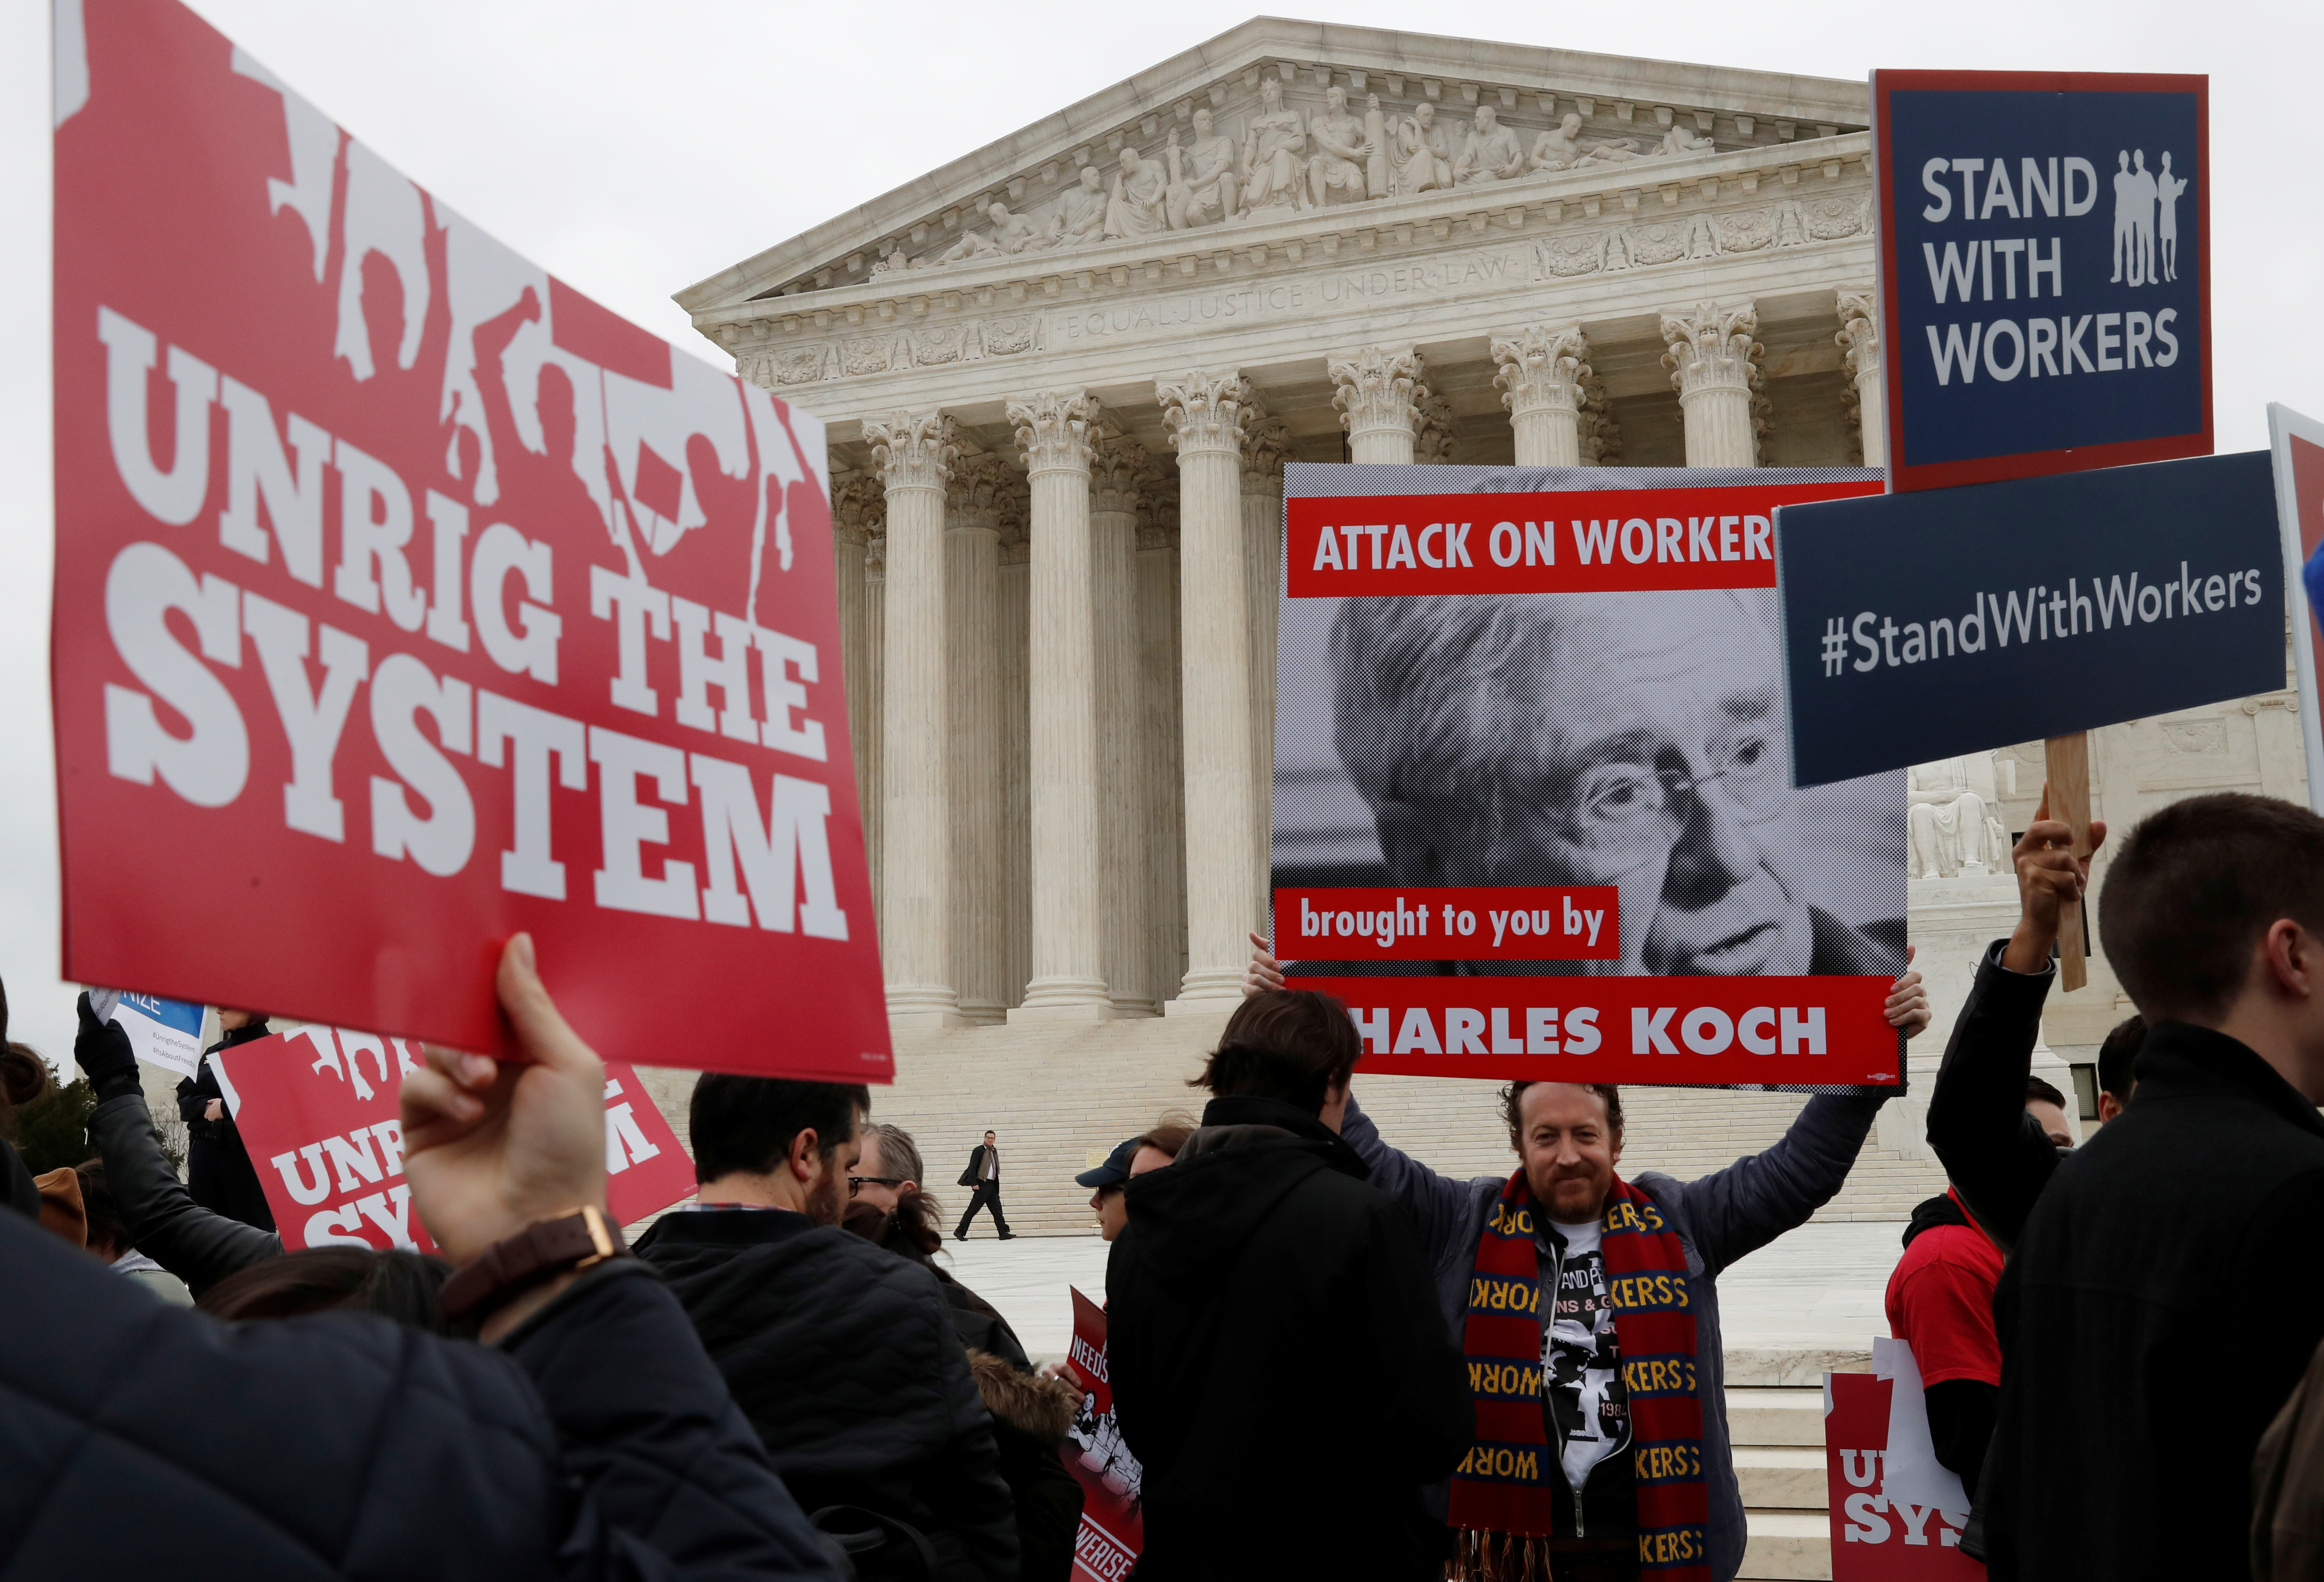 Union members gather outside of the United States Supreme Court in Washington, U.S., February 26, 2018. REUTERS/Leah Millis